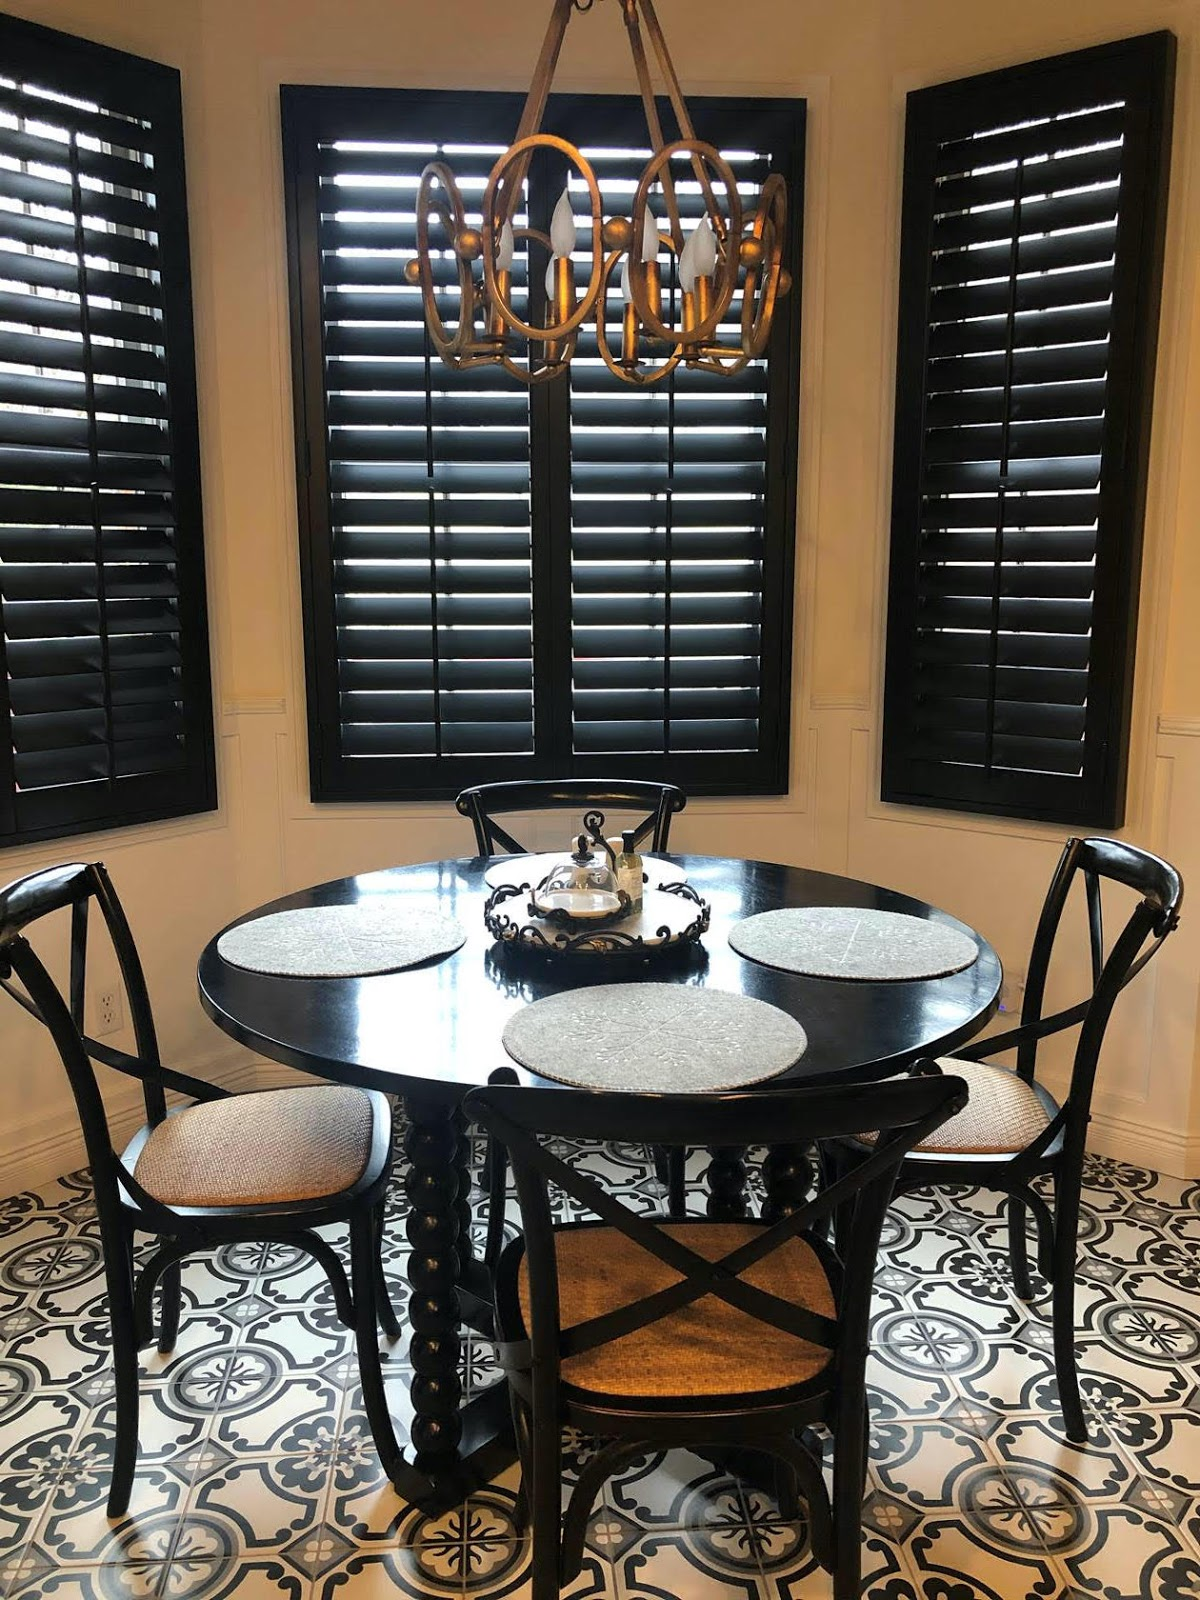 Designer Kitchen in Need of Attention-Grabbing Shutters